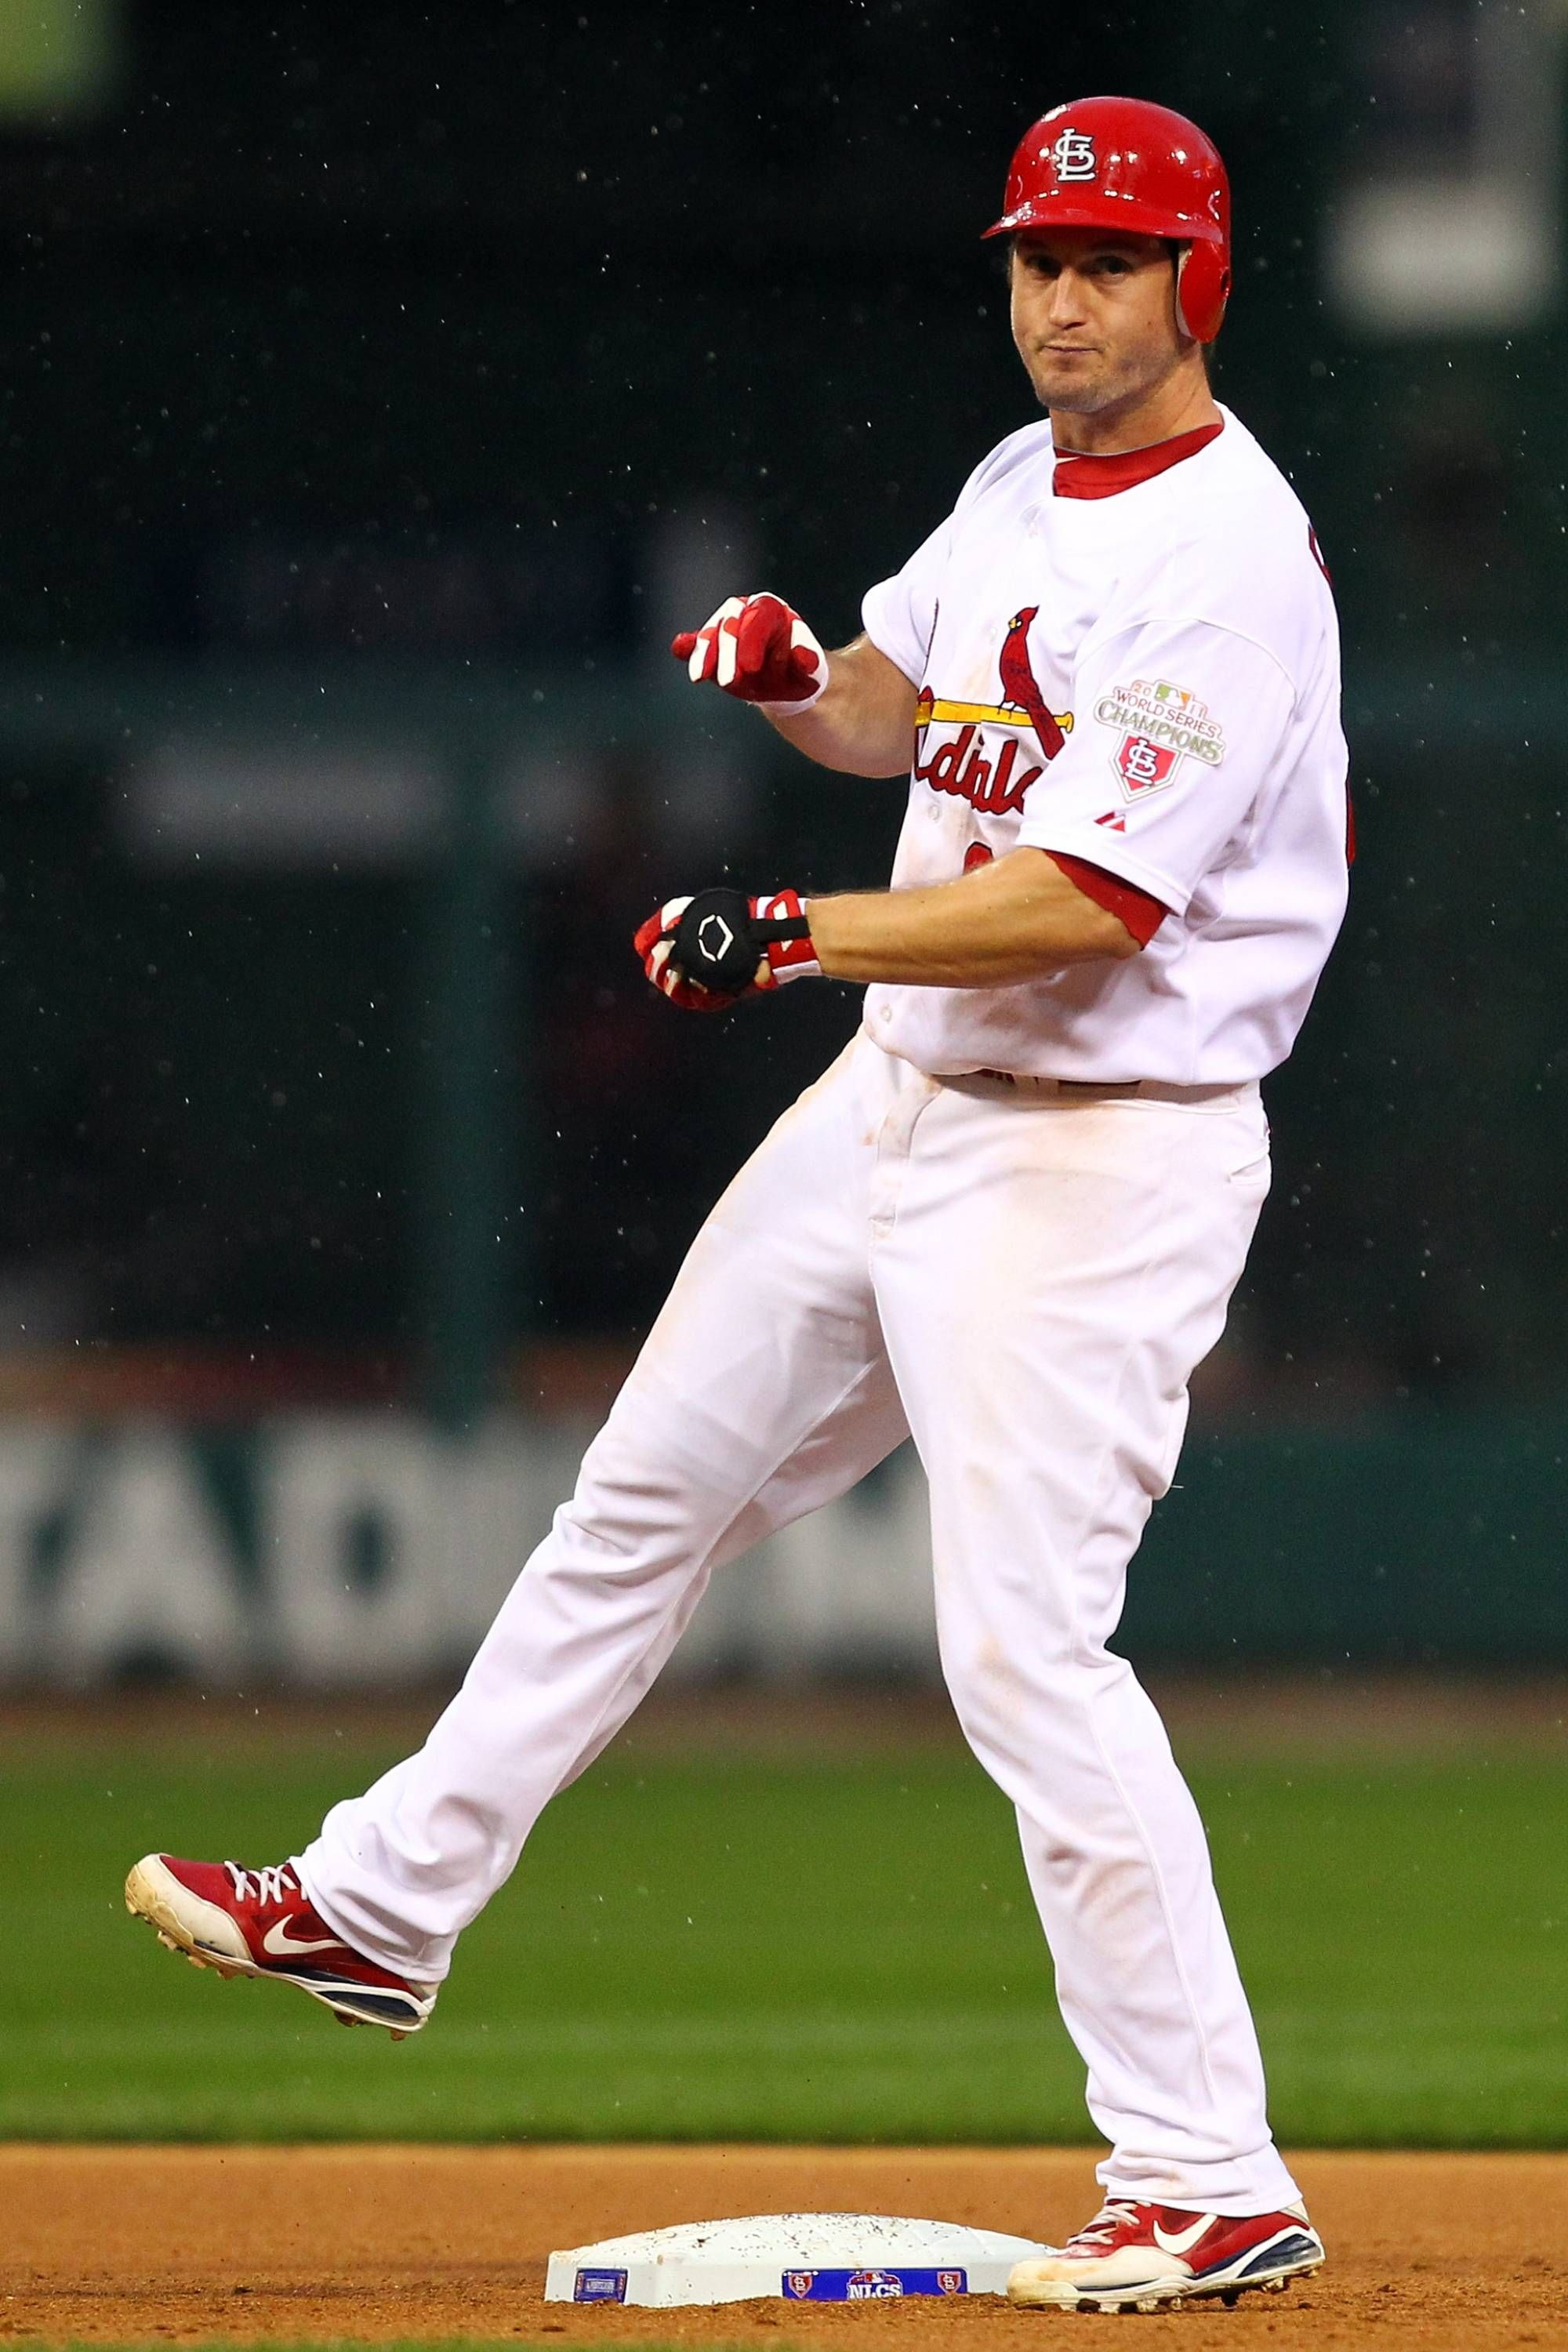 Game 3 of the NLCS David Freese with a double 101712